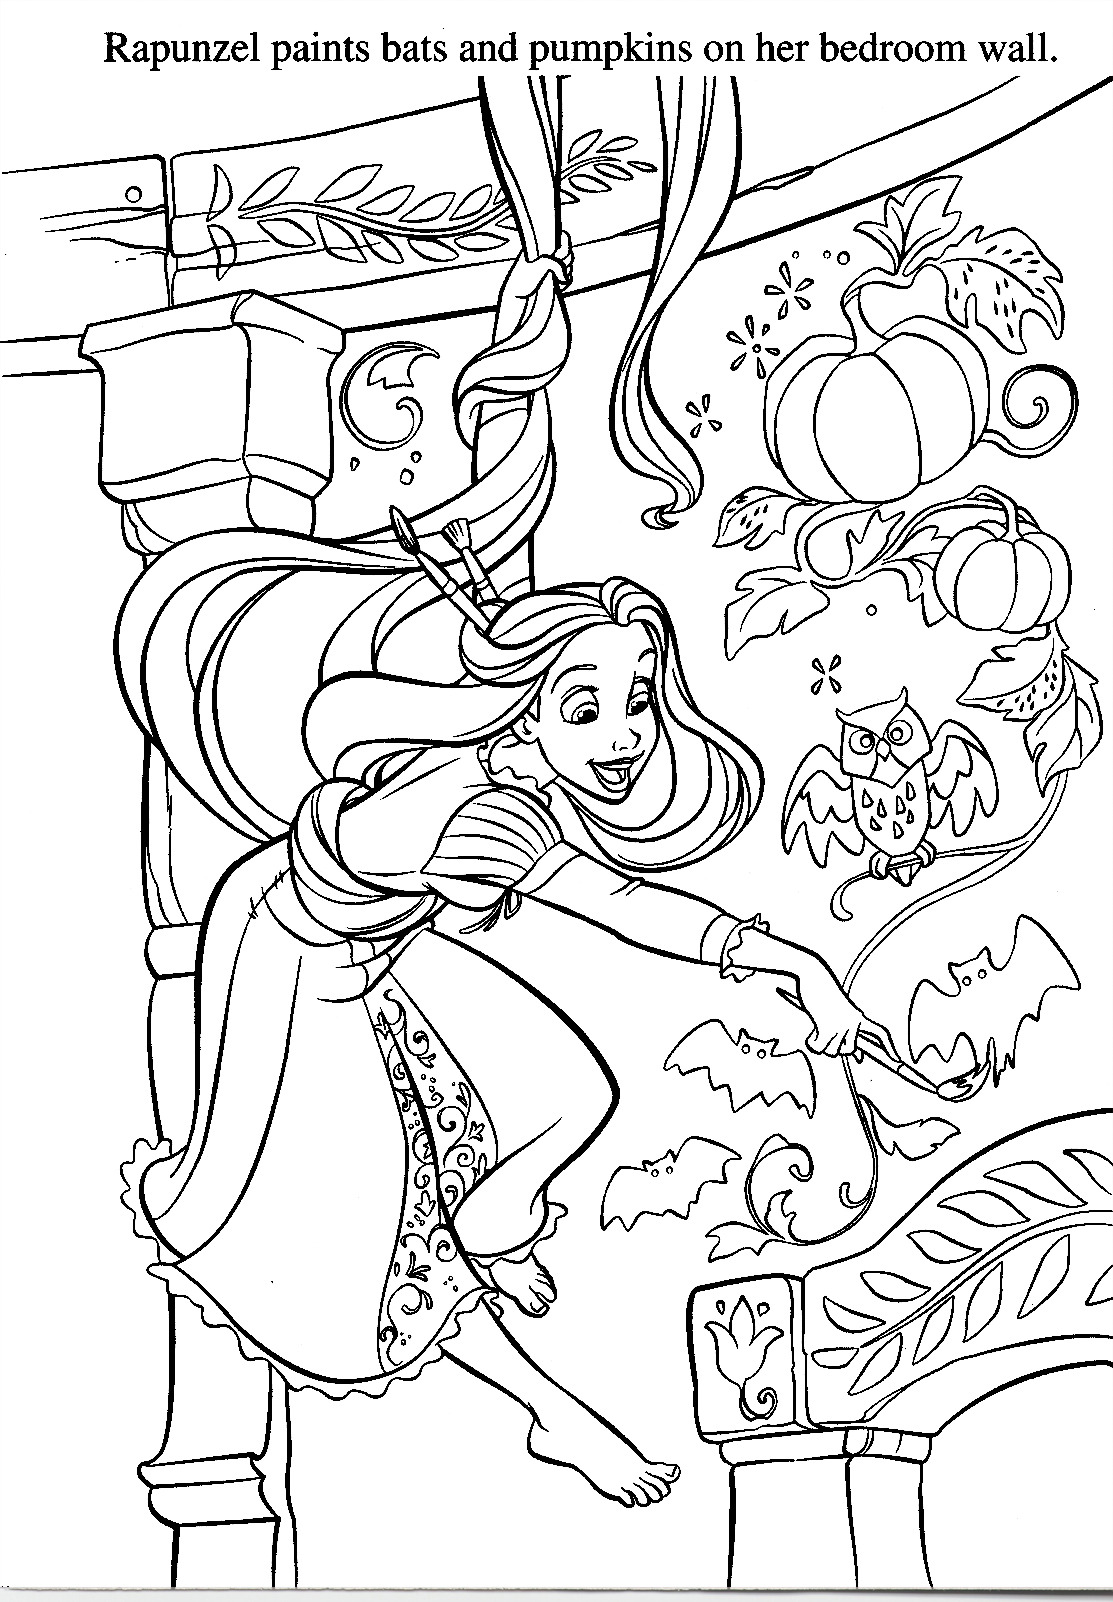 jeffree star coloring pages jeffree star greeting card for sale by elena spedale coloring jeffree star pages